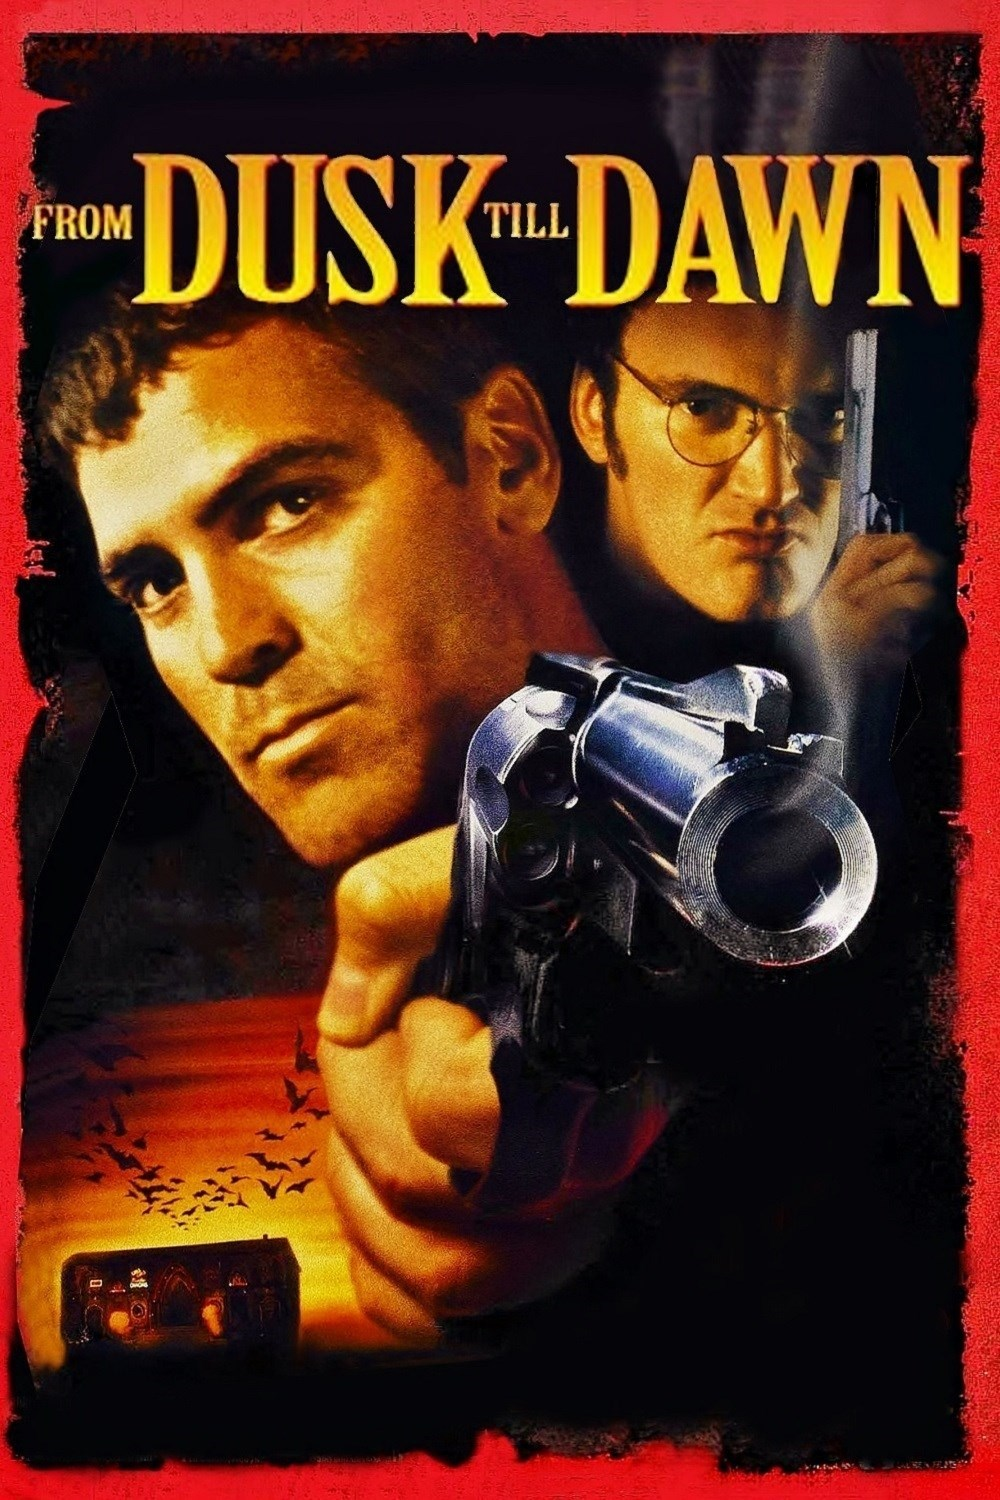 From Dusk Till Dawn Might Be The Best Vampire Film Of The Last 20